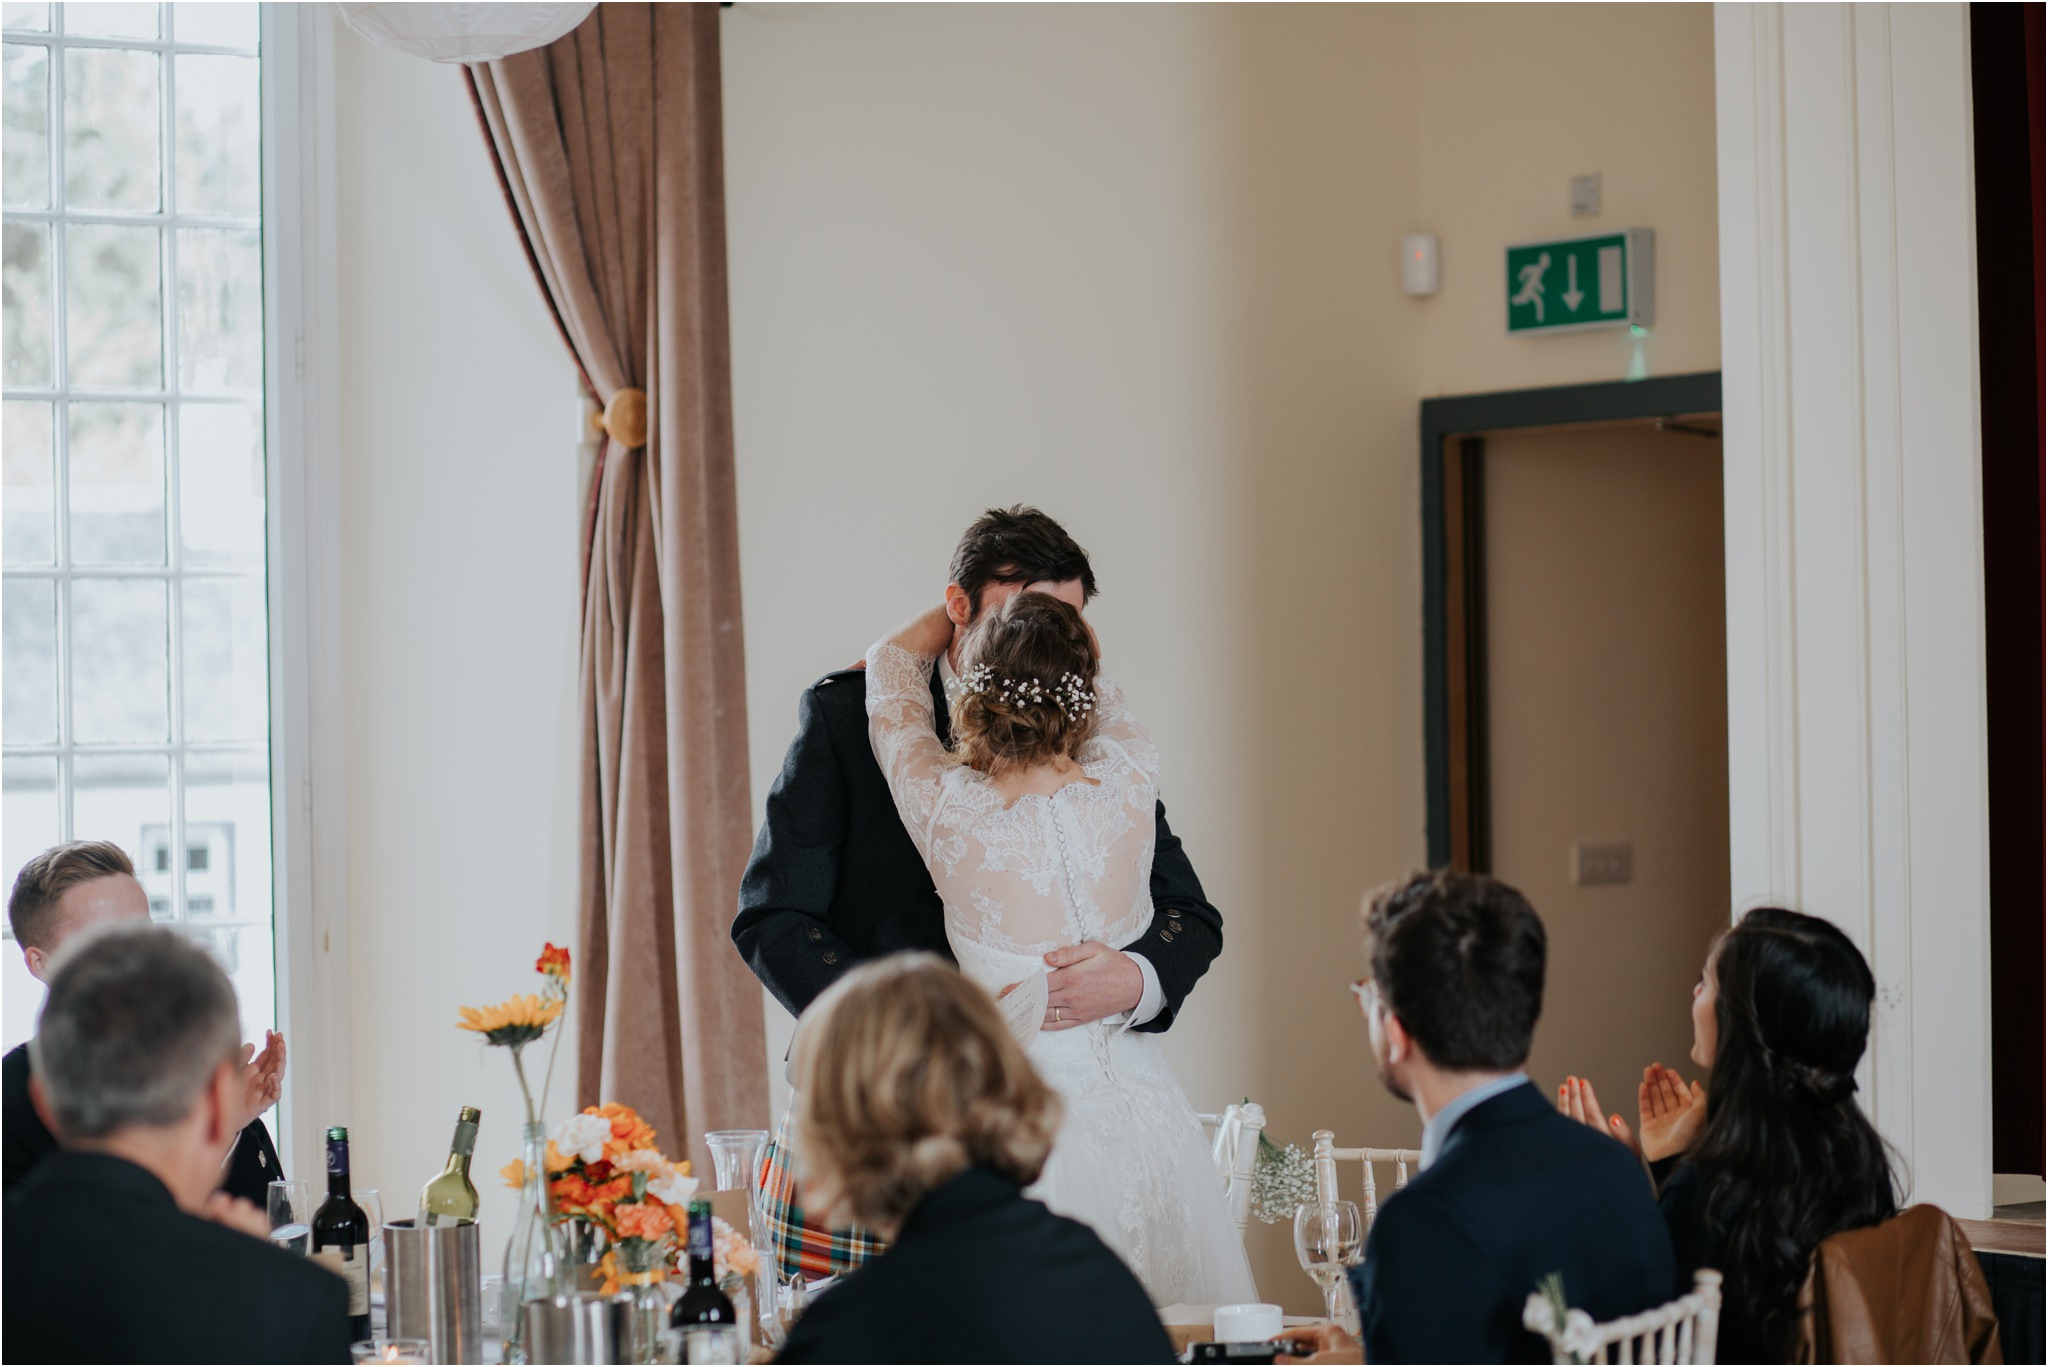 Photography 78 - Glasgow Wedding Photographer - Fraser Thirza - Killearn Village Hall - Three Sisters Bake Wedding_0128.jpg